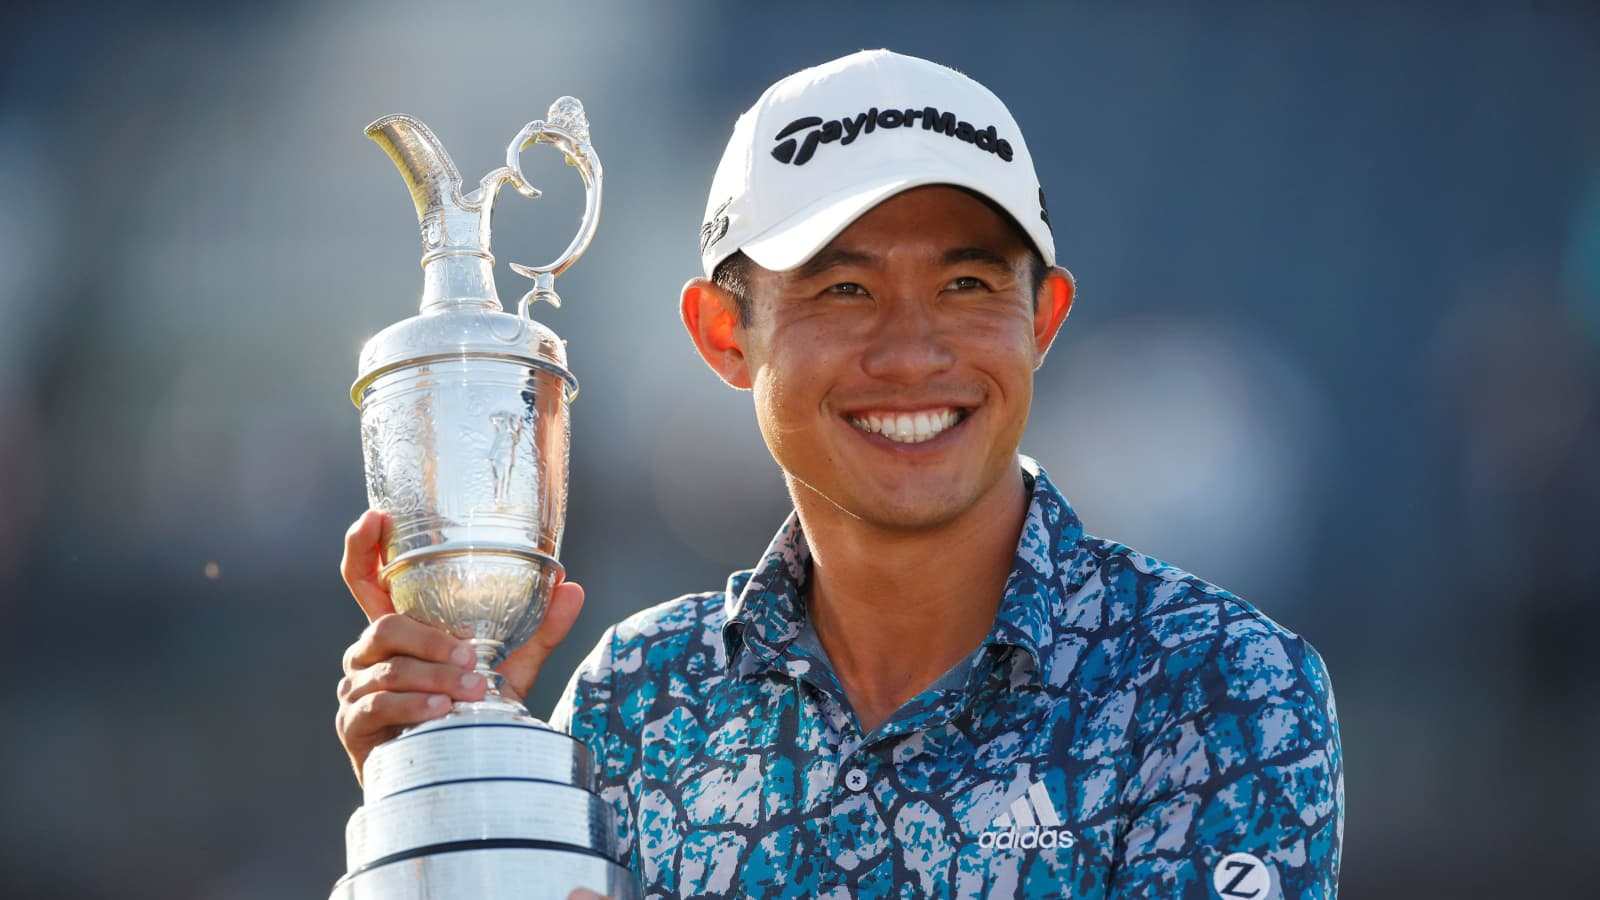 British Open 2021: Collin Morikawa wins The Open Championship for second major at age 24